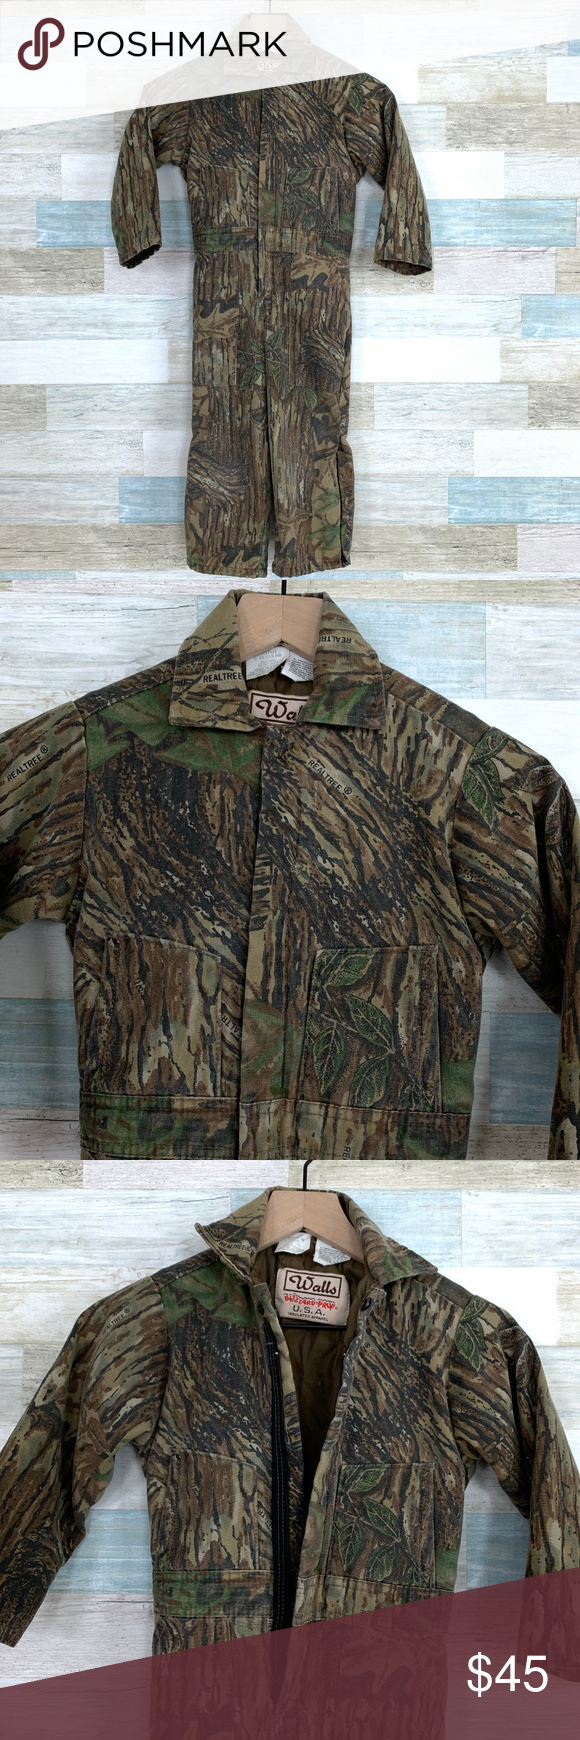 sold walls blizzard pruf realtree coveralls camo in 2020 on walls insulated coveralls blizzard pruf id=41166